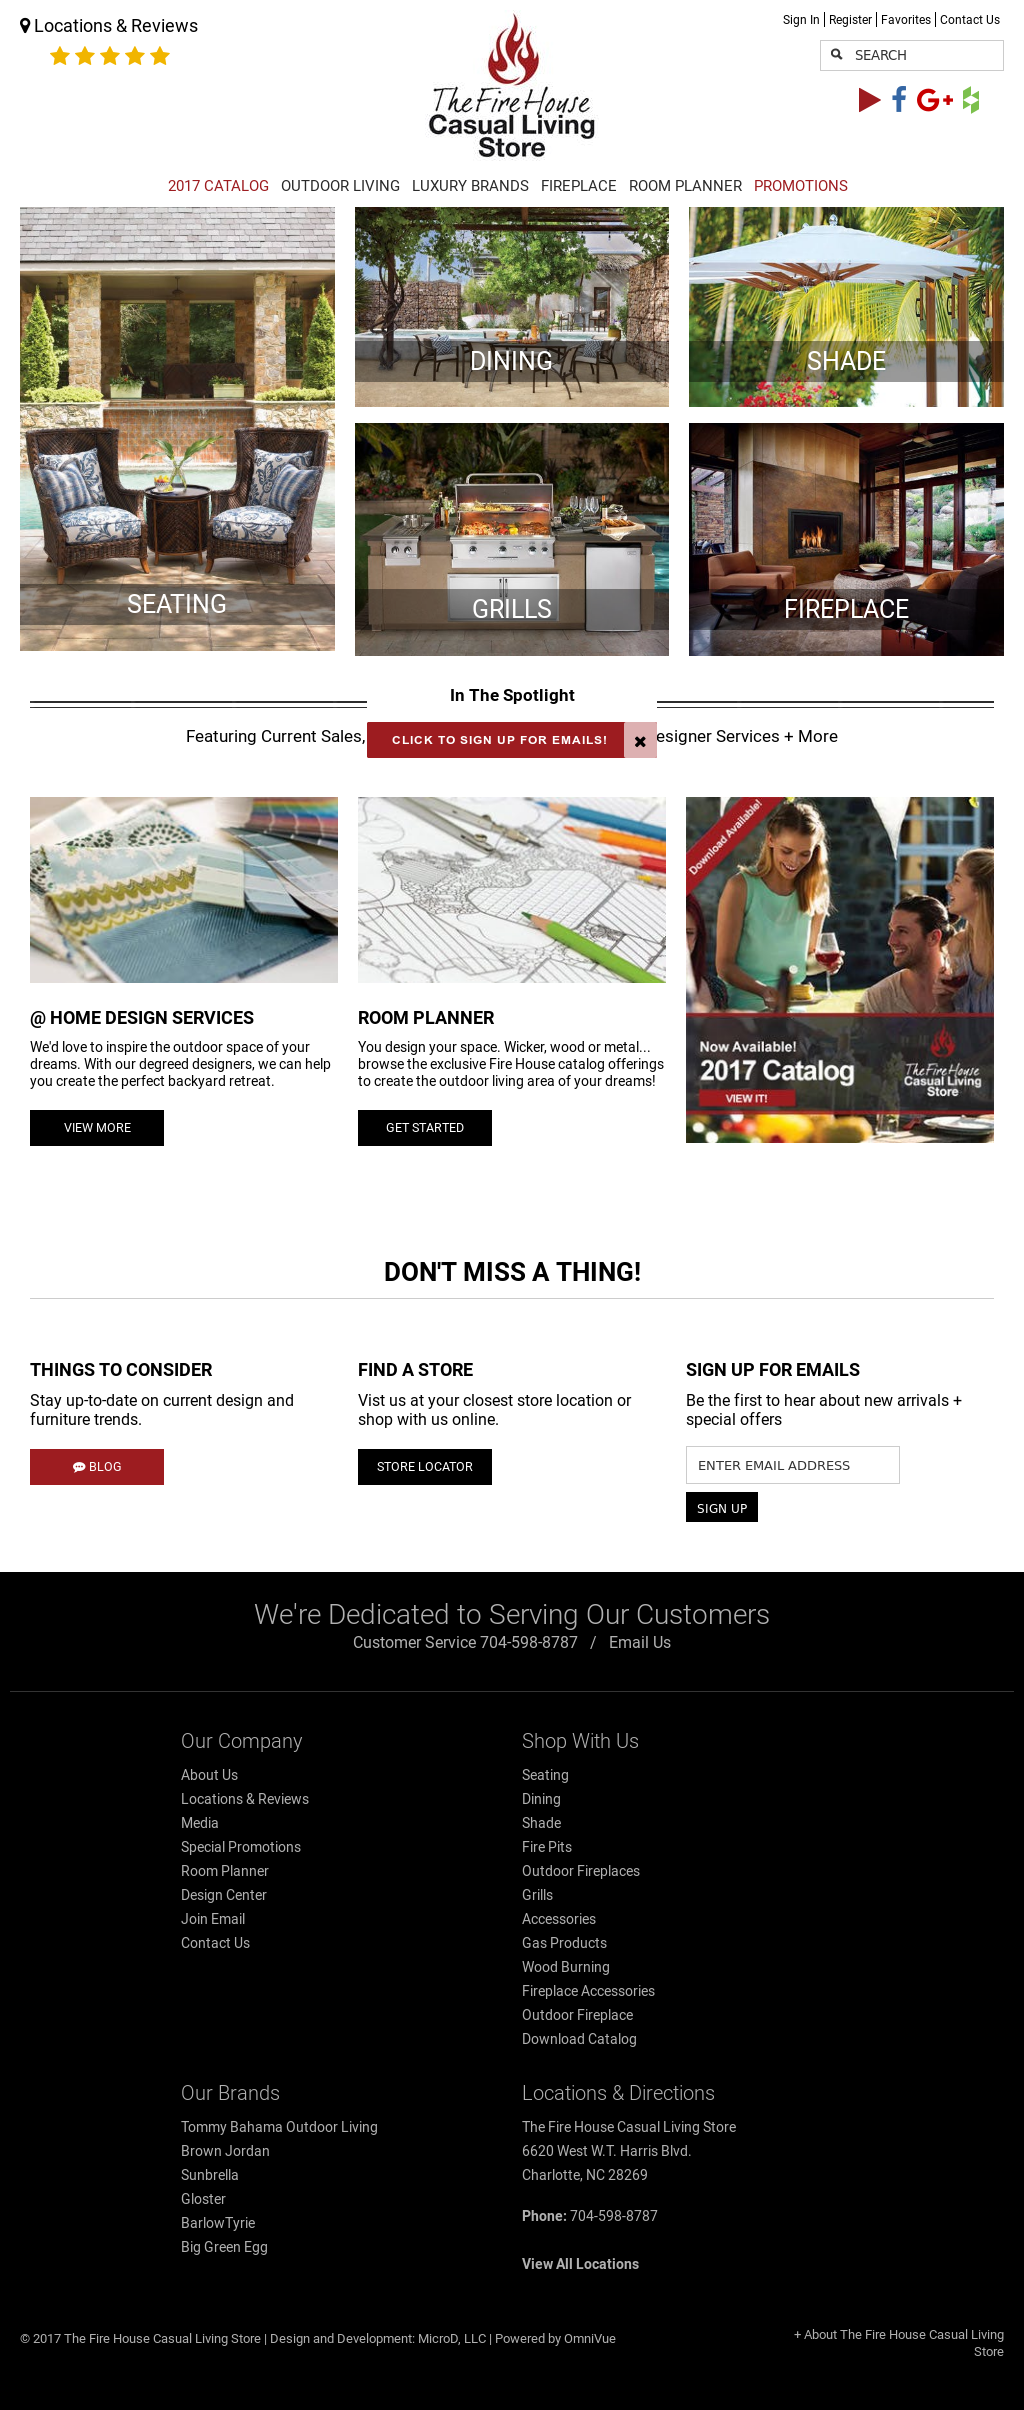 Firehouse Casual Living Store Website History